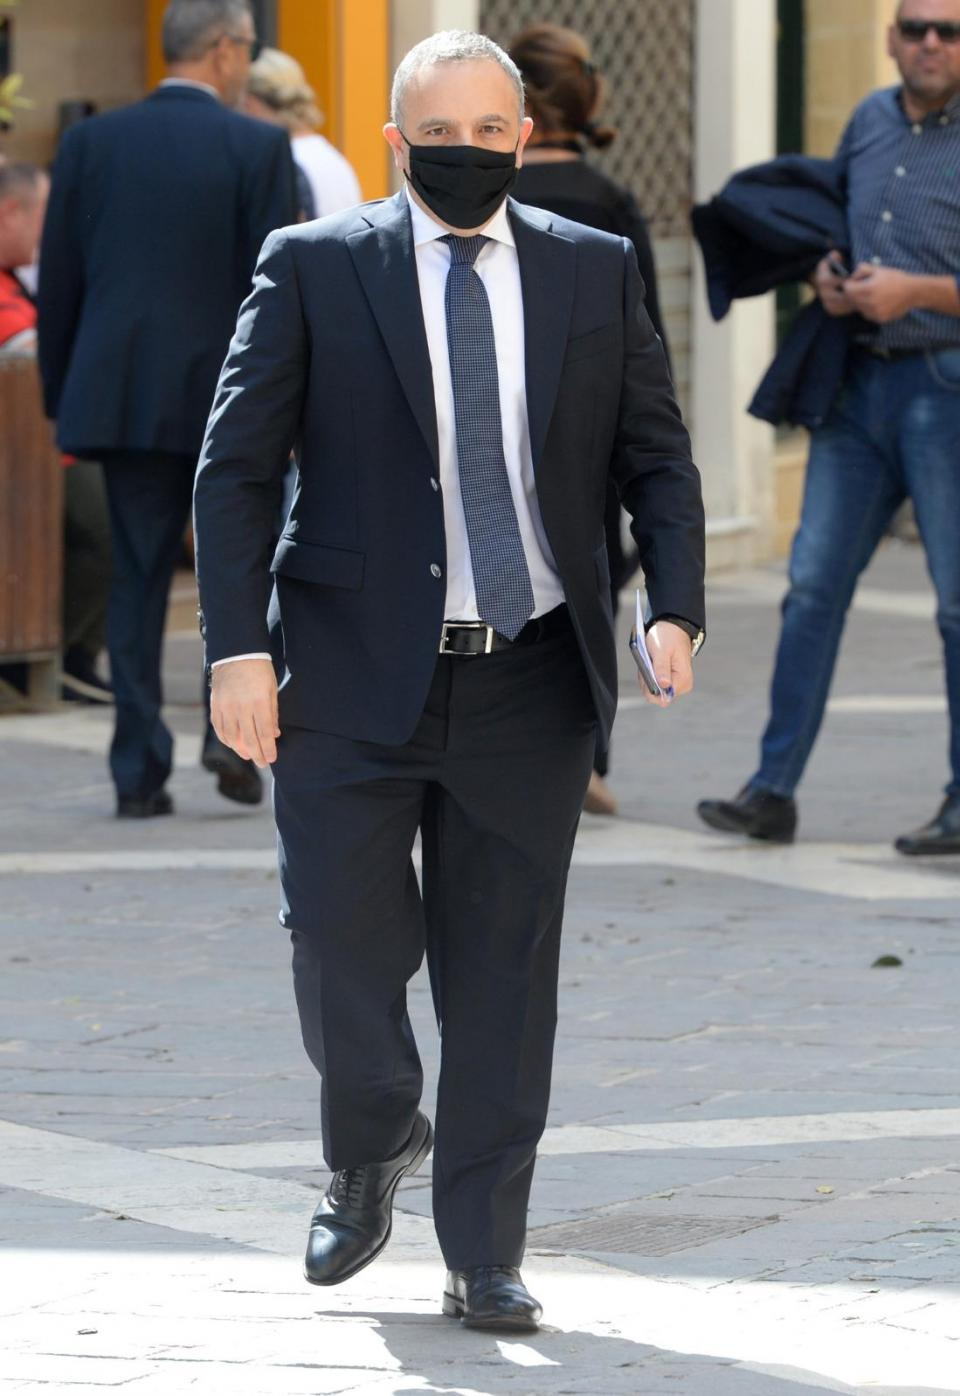 Keith Schembri on his way to court on Tuesday.